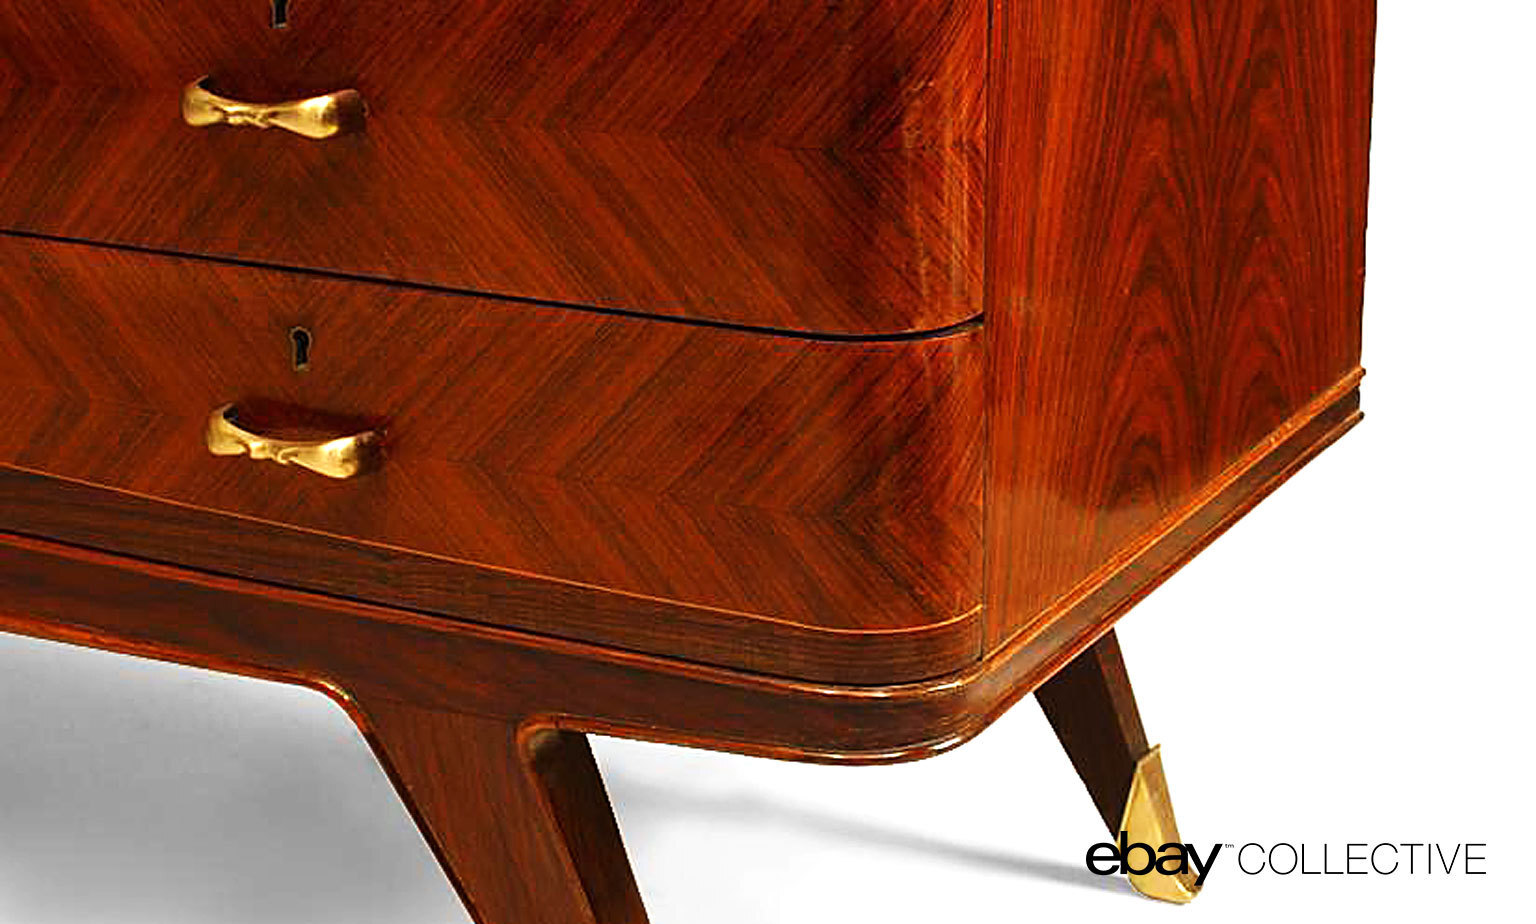 You can easily find used furniture for sale that fits into your life and your budget. Browse home and garden on eBay to spruce up your space with used furniture. Not only is it easy on your budget, but it's also a great way to match the style of your existing furniture no matter where you found it.